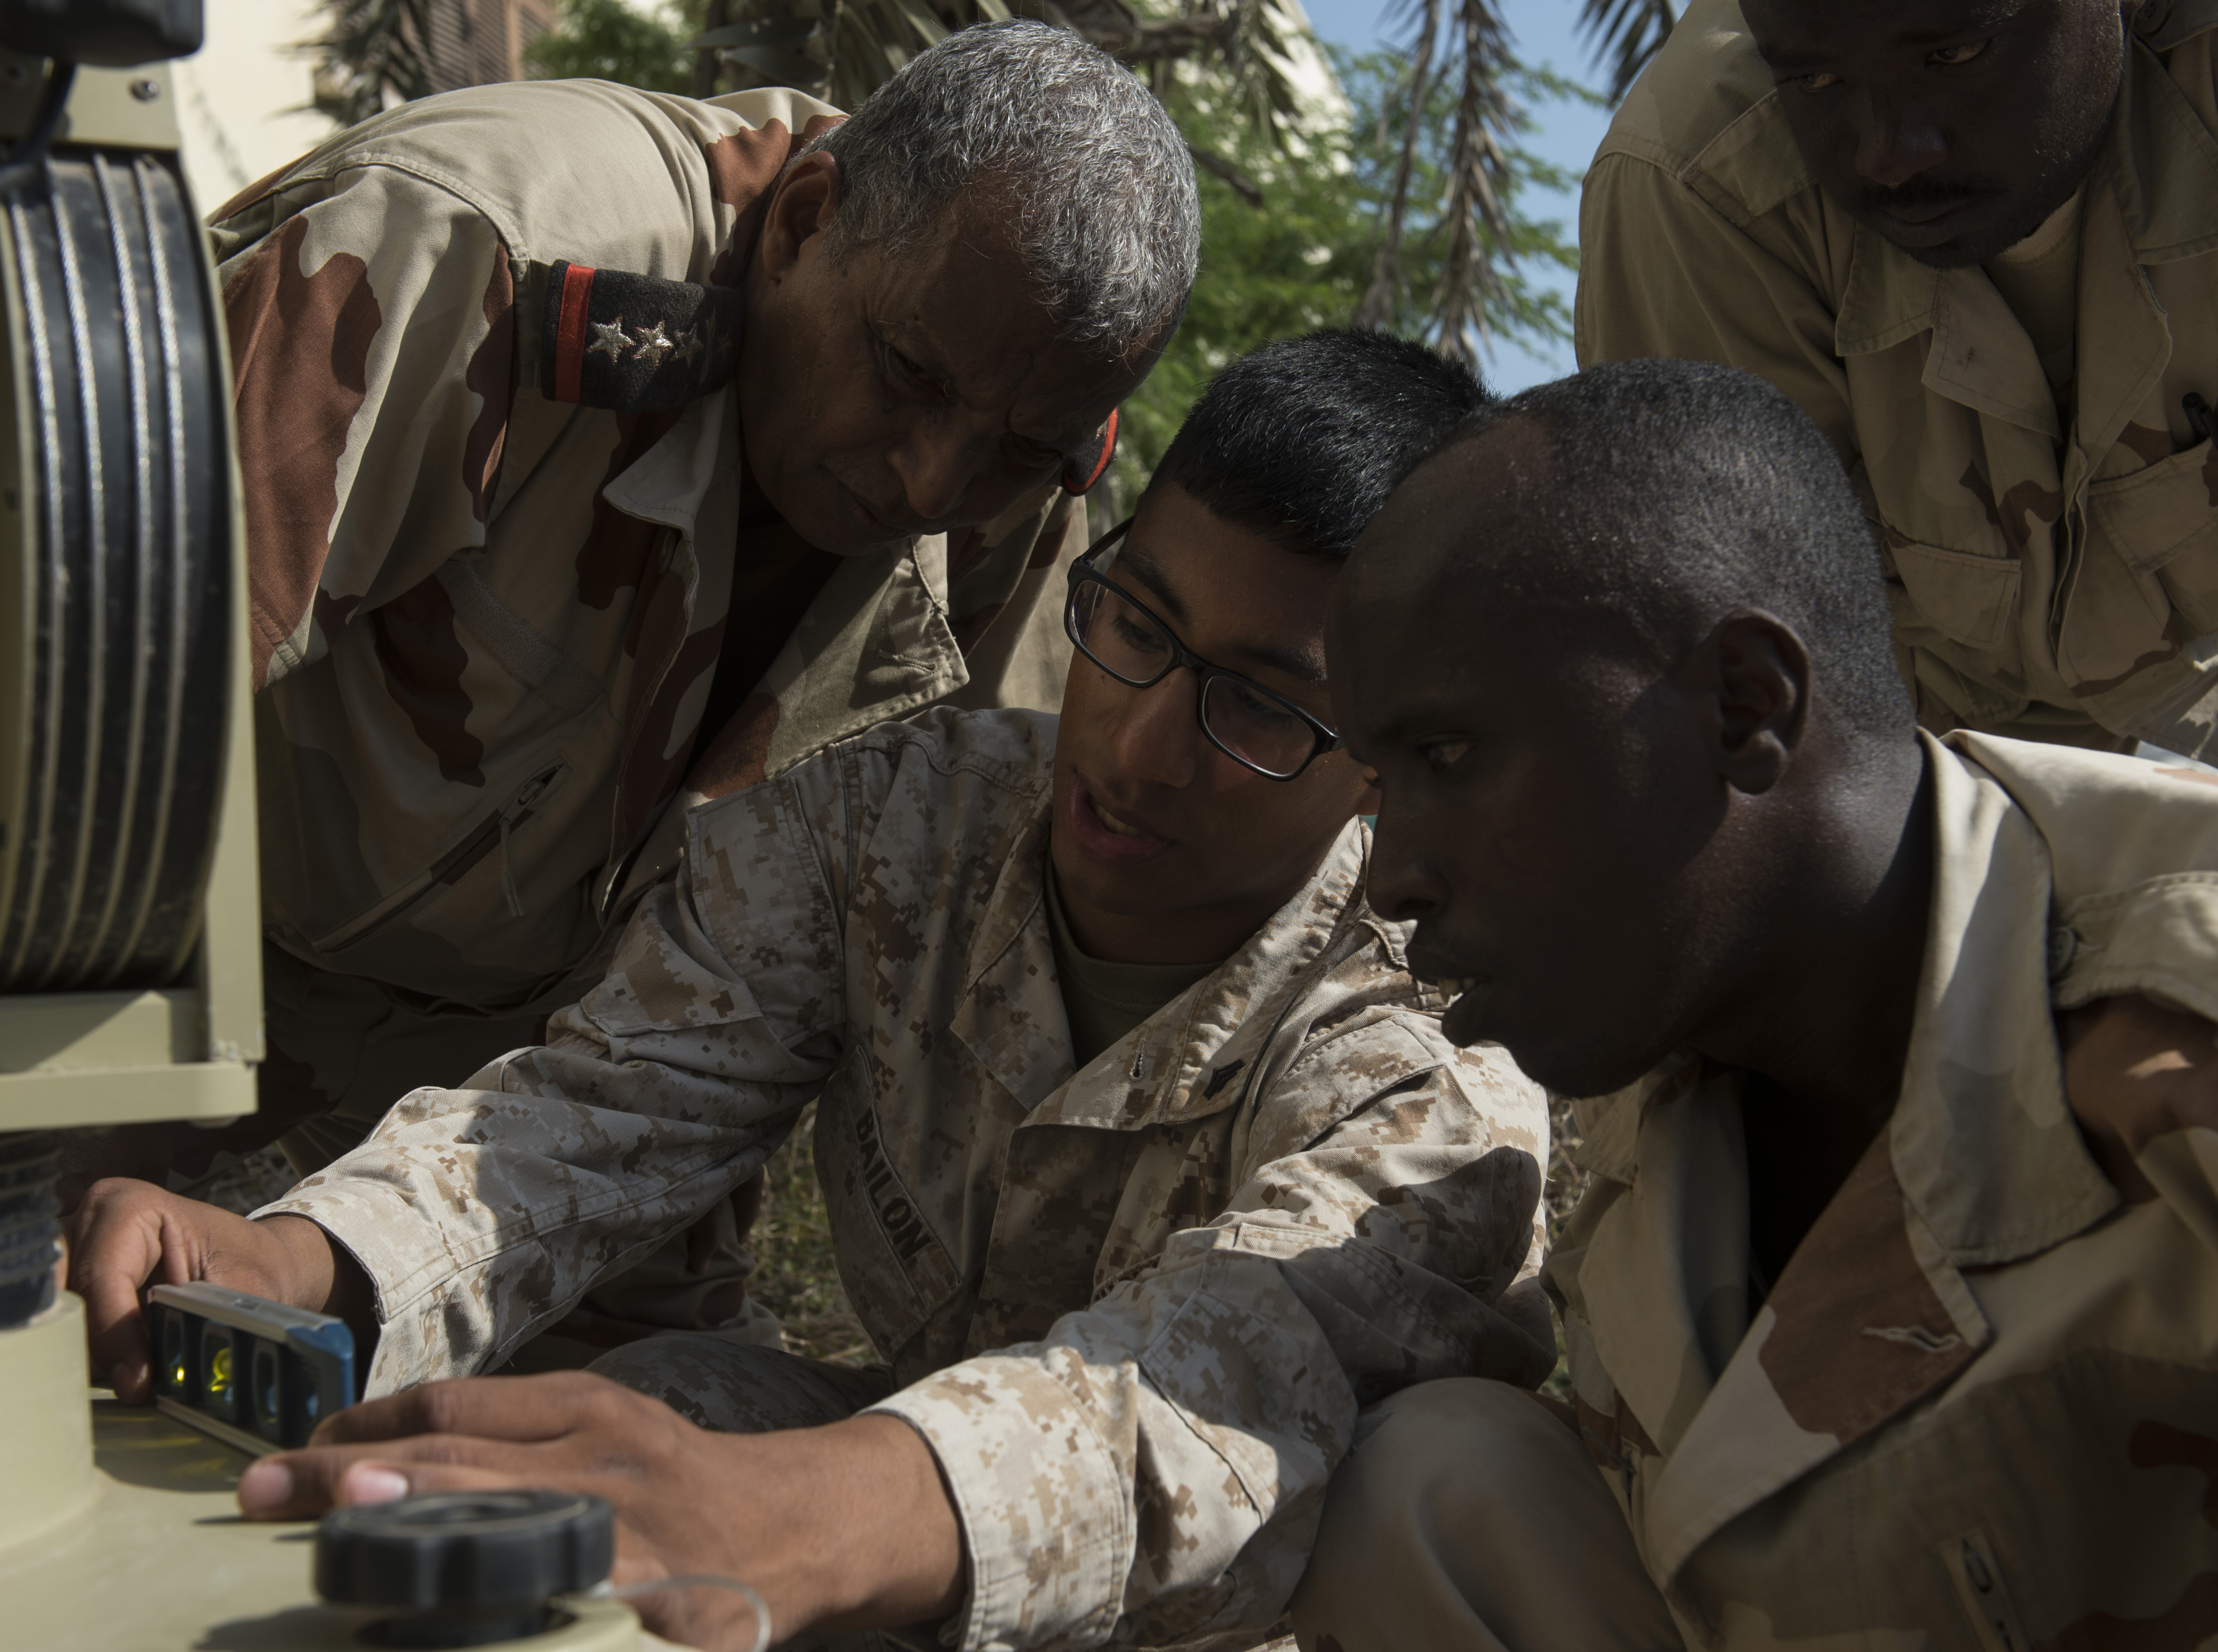 U.S. Marine Corps Cpl. Nehemias Bailon, Combined Joint Task Force-Horn of Africa, Africa Data Sharing Network (ADSN) help desk lead, demonstrates how to level the pedestal of an ADSN terminal Feb. 18, 2016, in Djibouti. The ADSN is a means for African Union Mission in Somalia (AMISOM) troop contributing countries to communicate and share information with the U.S. and amongst each other. Members of CJTF-HOA taught Djiboutian Armed Forces members how to install and operate a terminal, and how to access the ADSN. (U.S. Air Force photo by Senior Airman Peter Thompson)